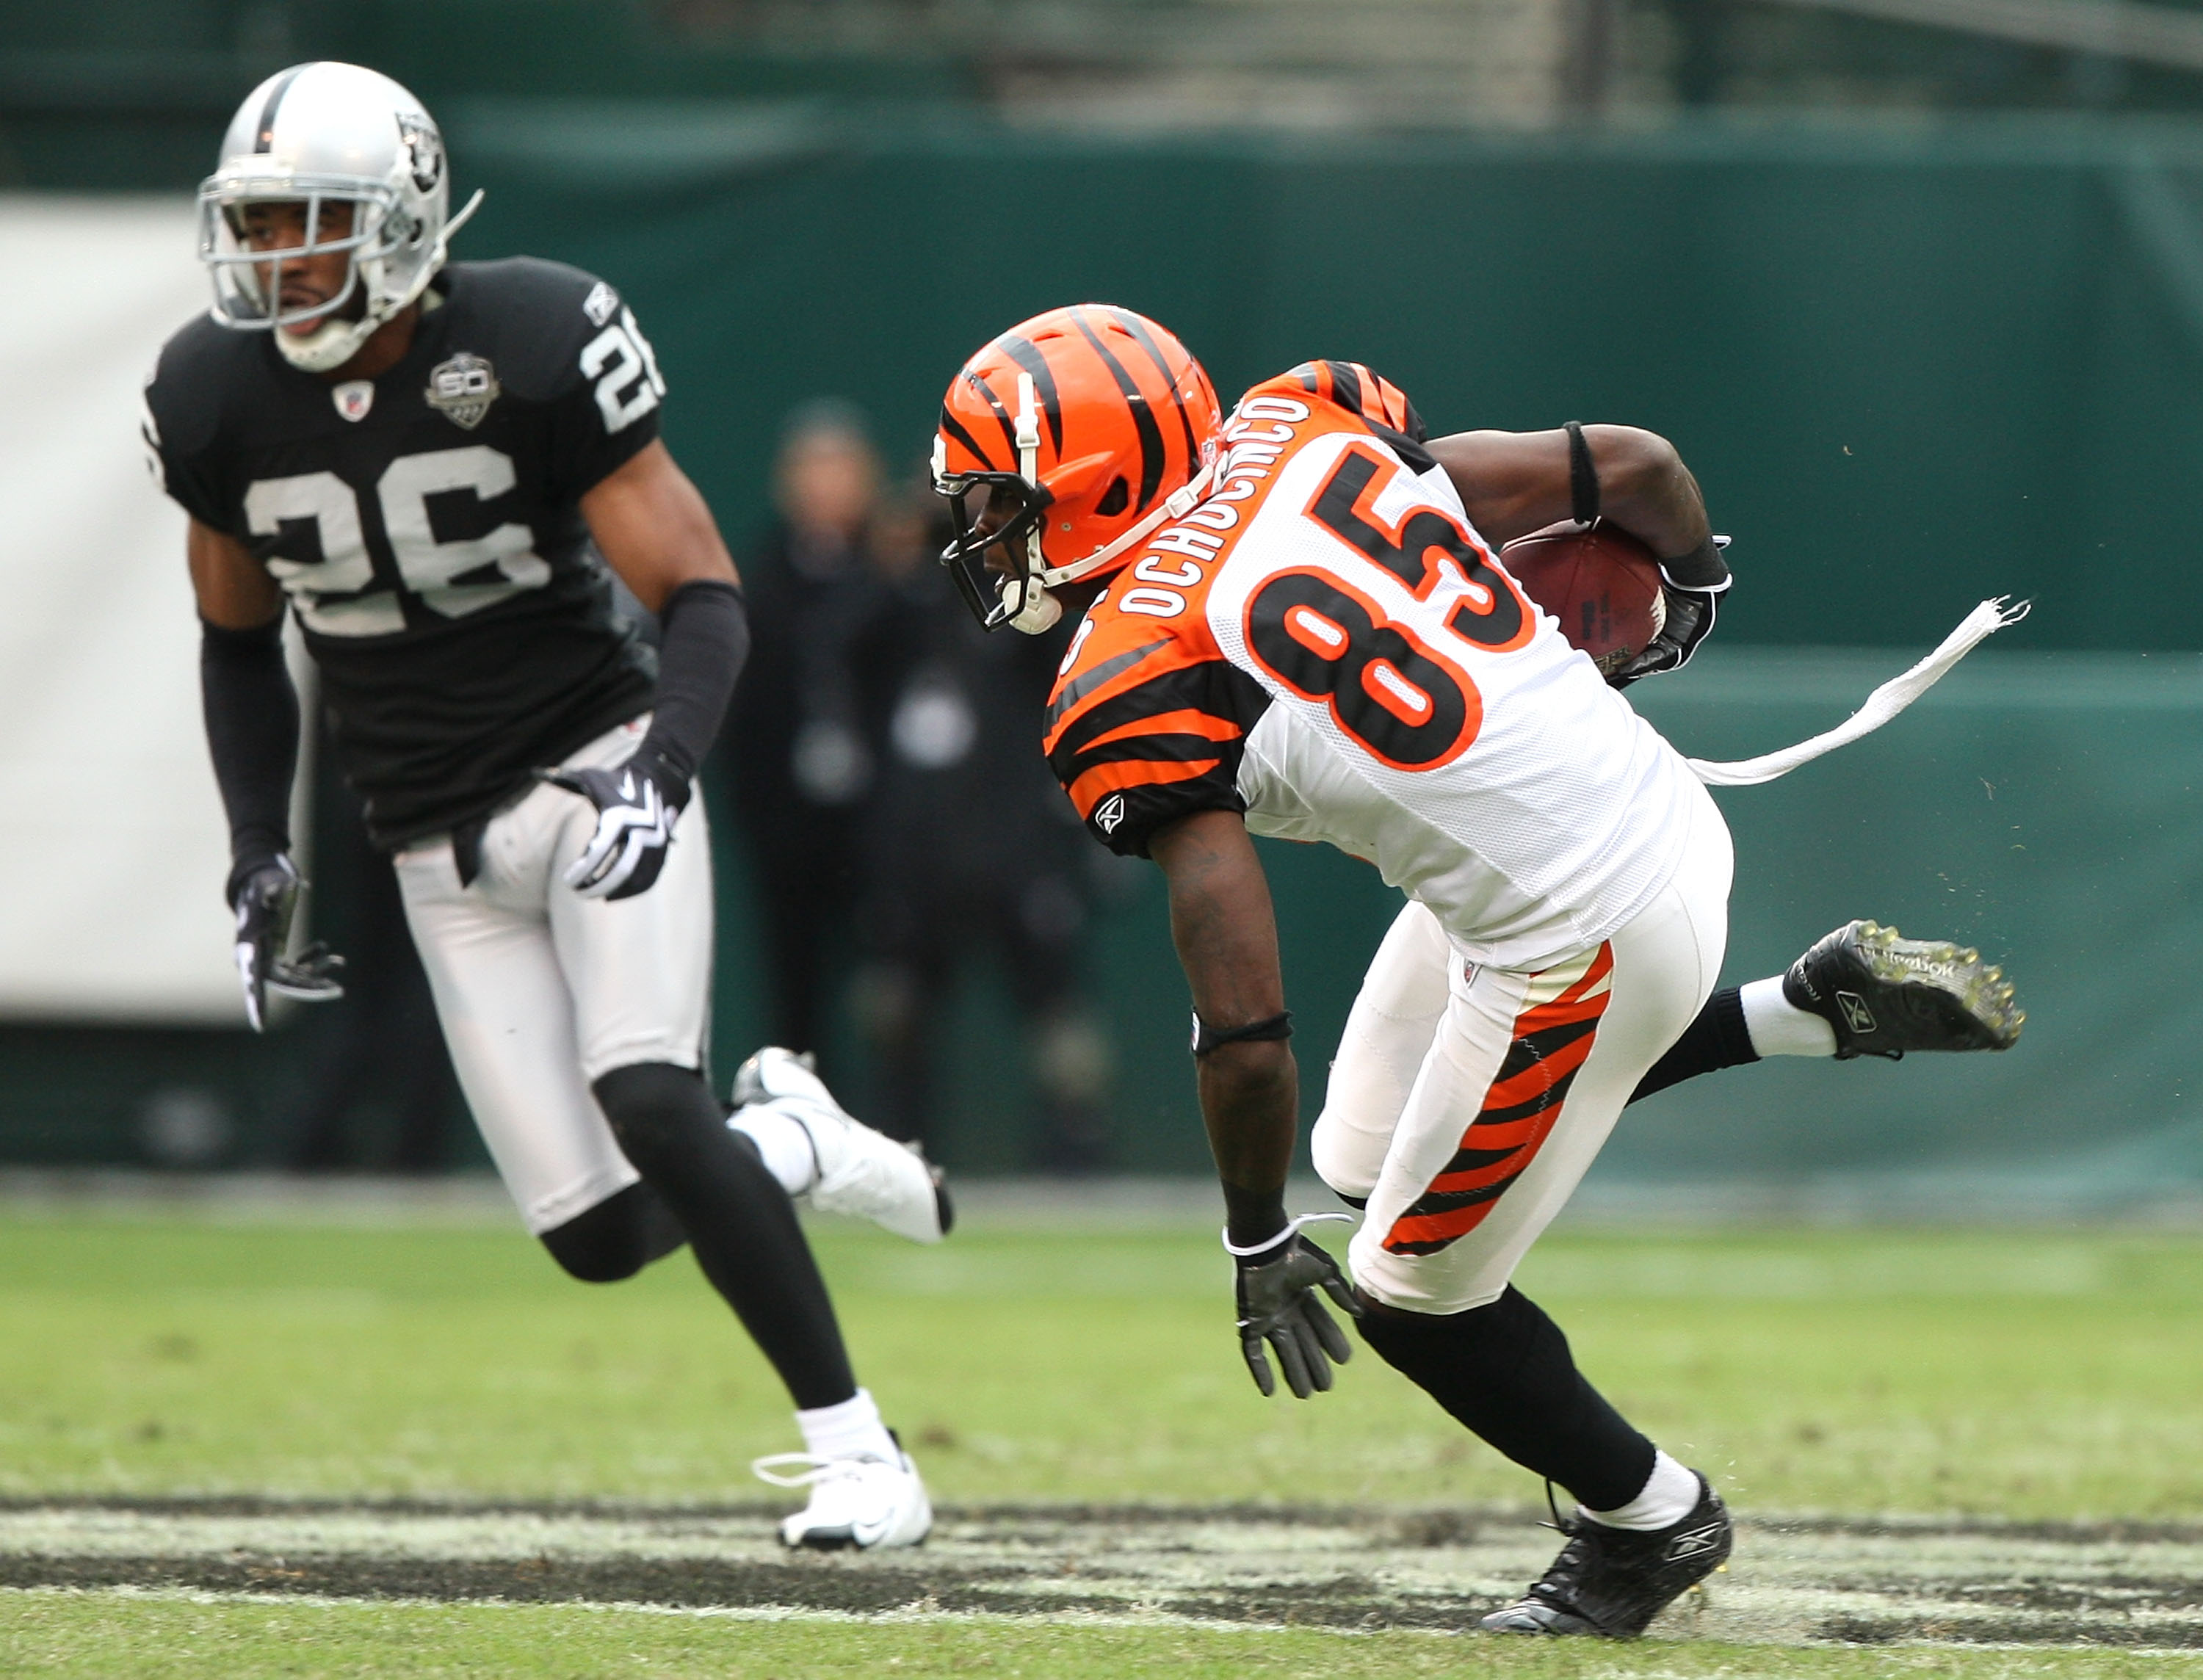 OAKLAND, CA - NOVEMBER 22:  Chad Ochocinco #85 of the Cincinnati Bengals runs after a catch against Stanford Routt #26 of the Oakland Raiders during an NFL game at Oakland-Alameda County Coliseum on November 22, 2009 in Oakland, California.  (Photo by Jed